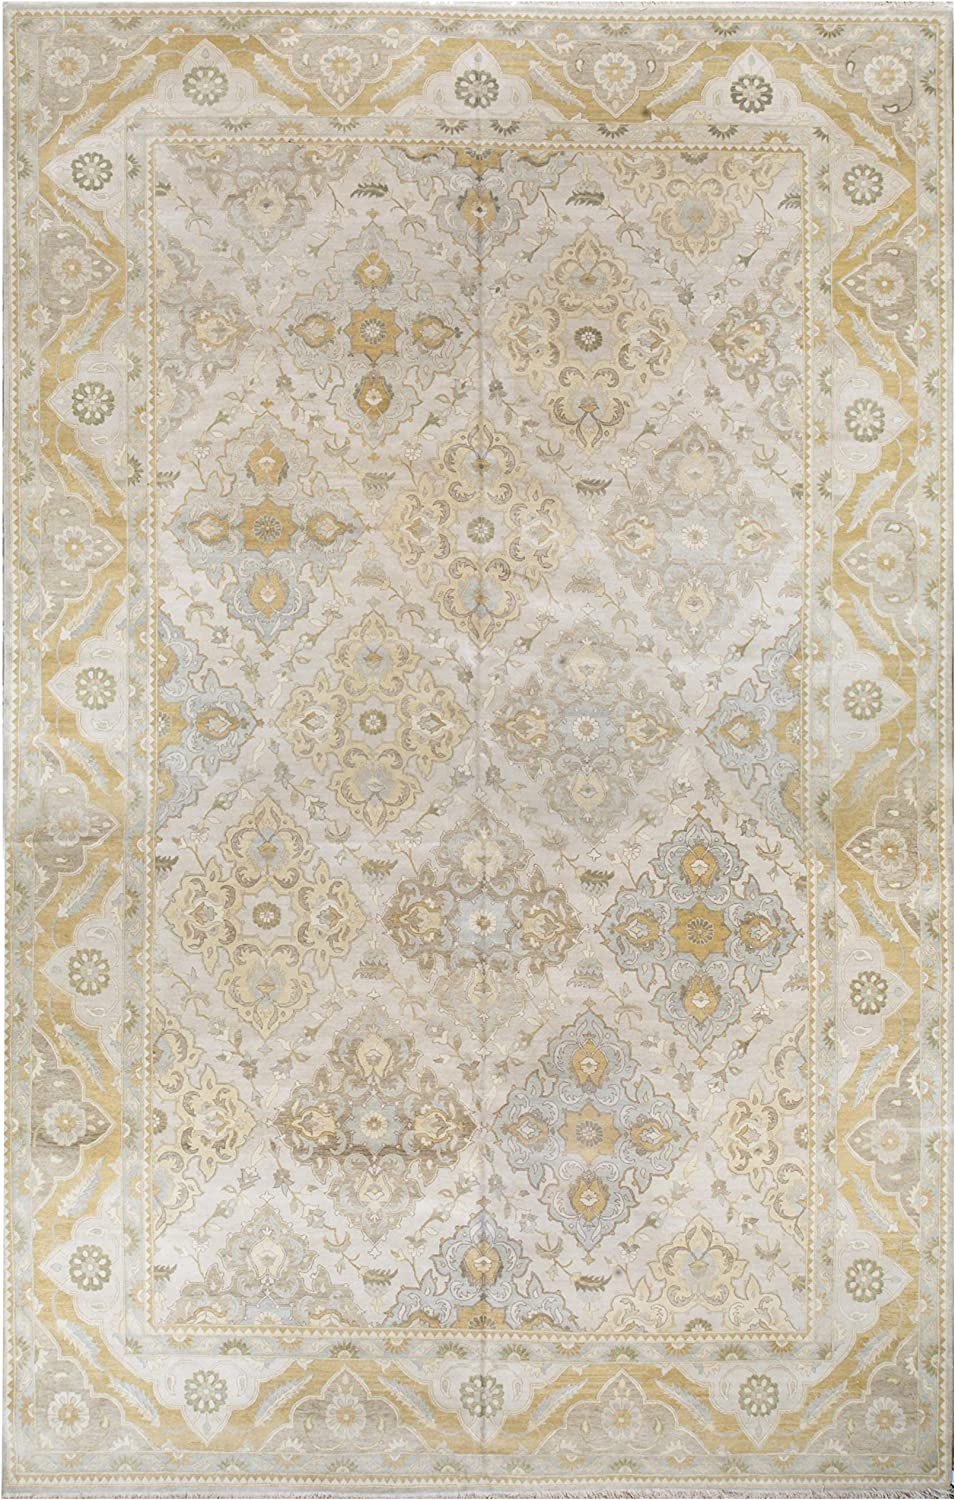 Handknotted Classic Zeigler Rug Bargain Max 42% OFF sale Wool - x 12' 19'